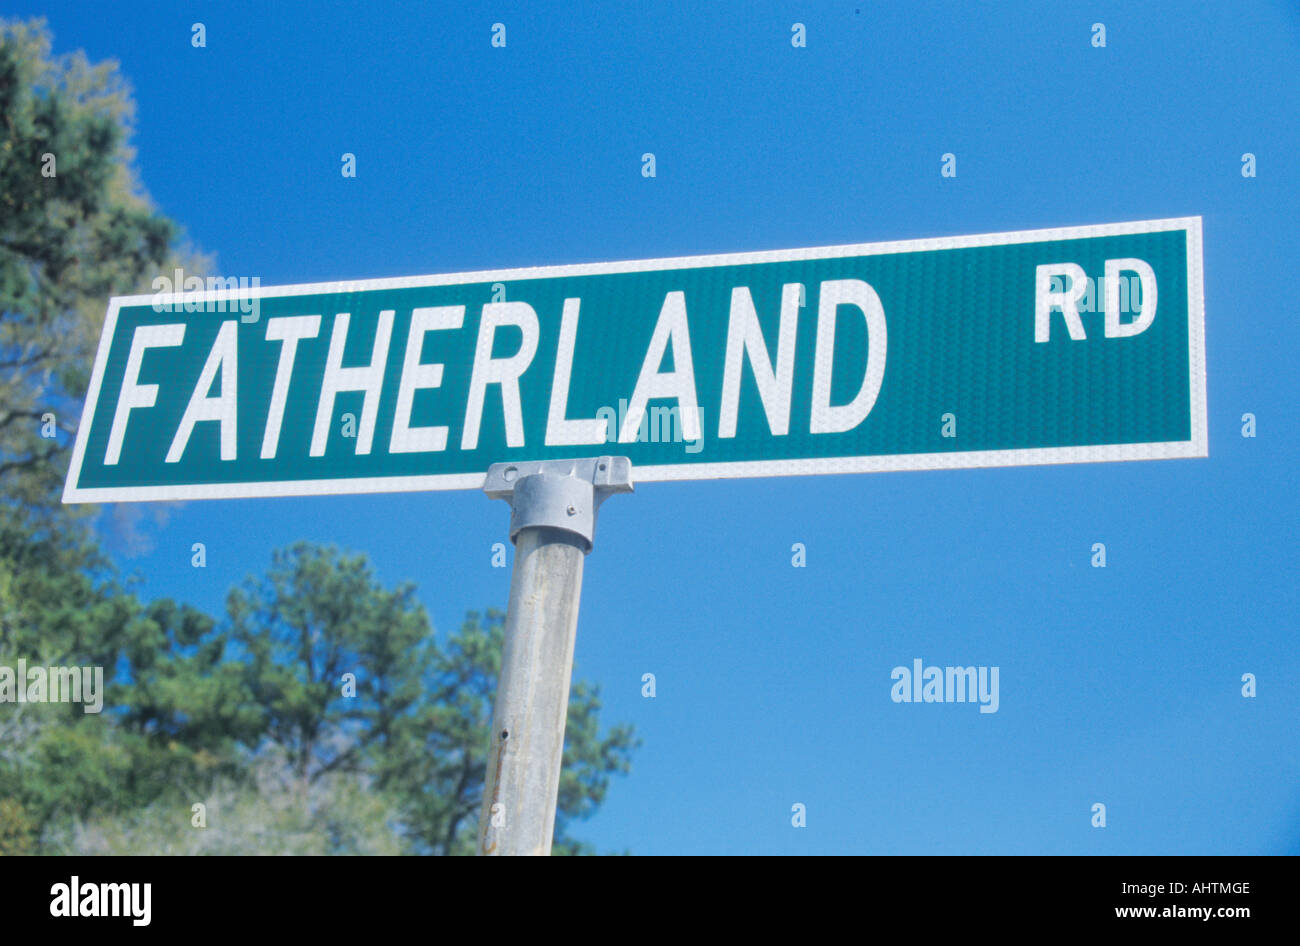 Fatherland Roadway Sign in Mississippi - Stock Image